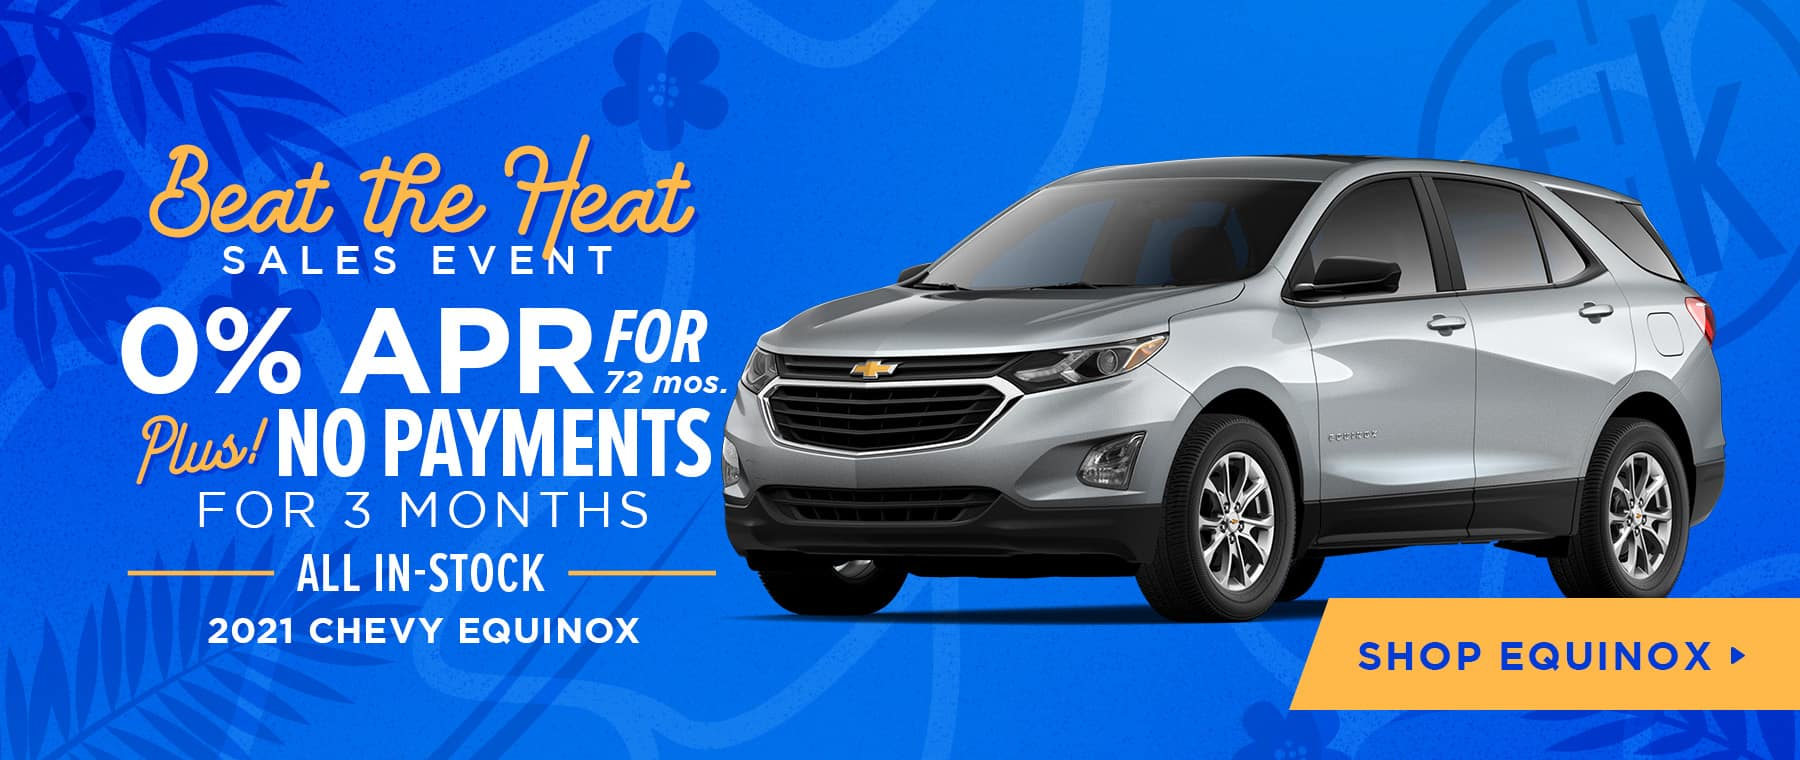 0% APR For 72 mos. PLUS No Payments for 3 Months All In-Stock 2021 Chevy Equinox